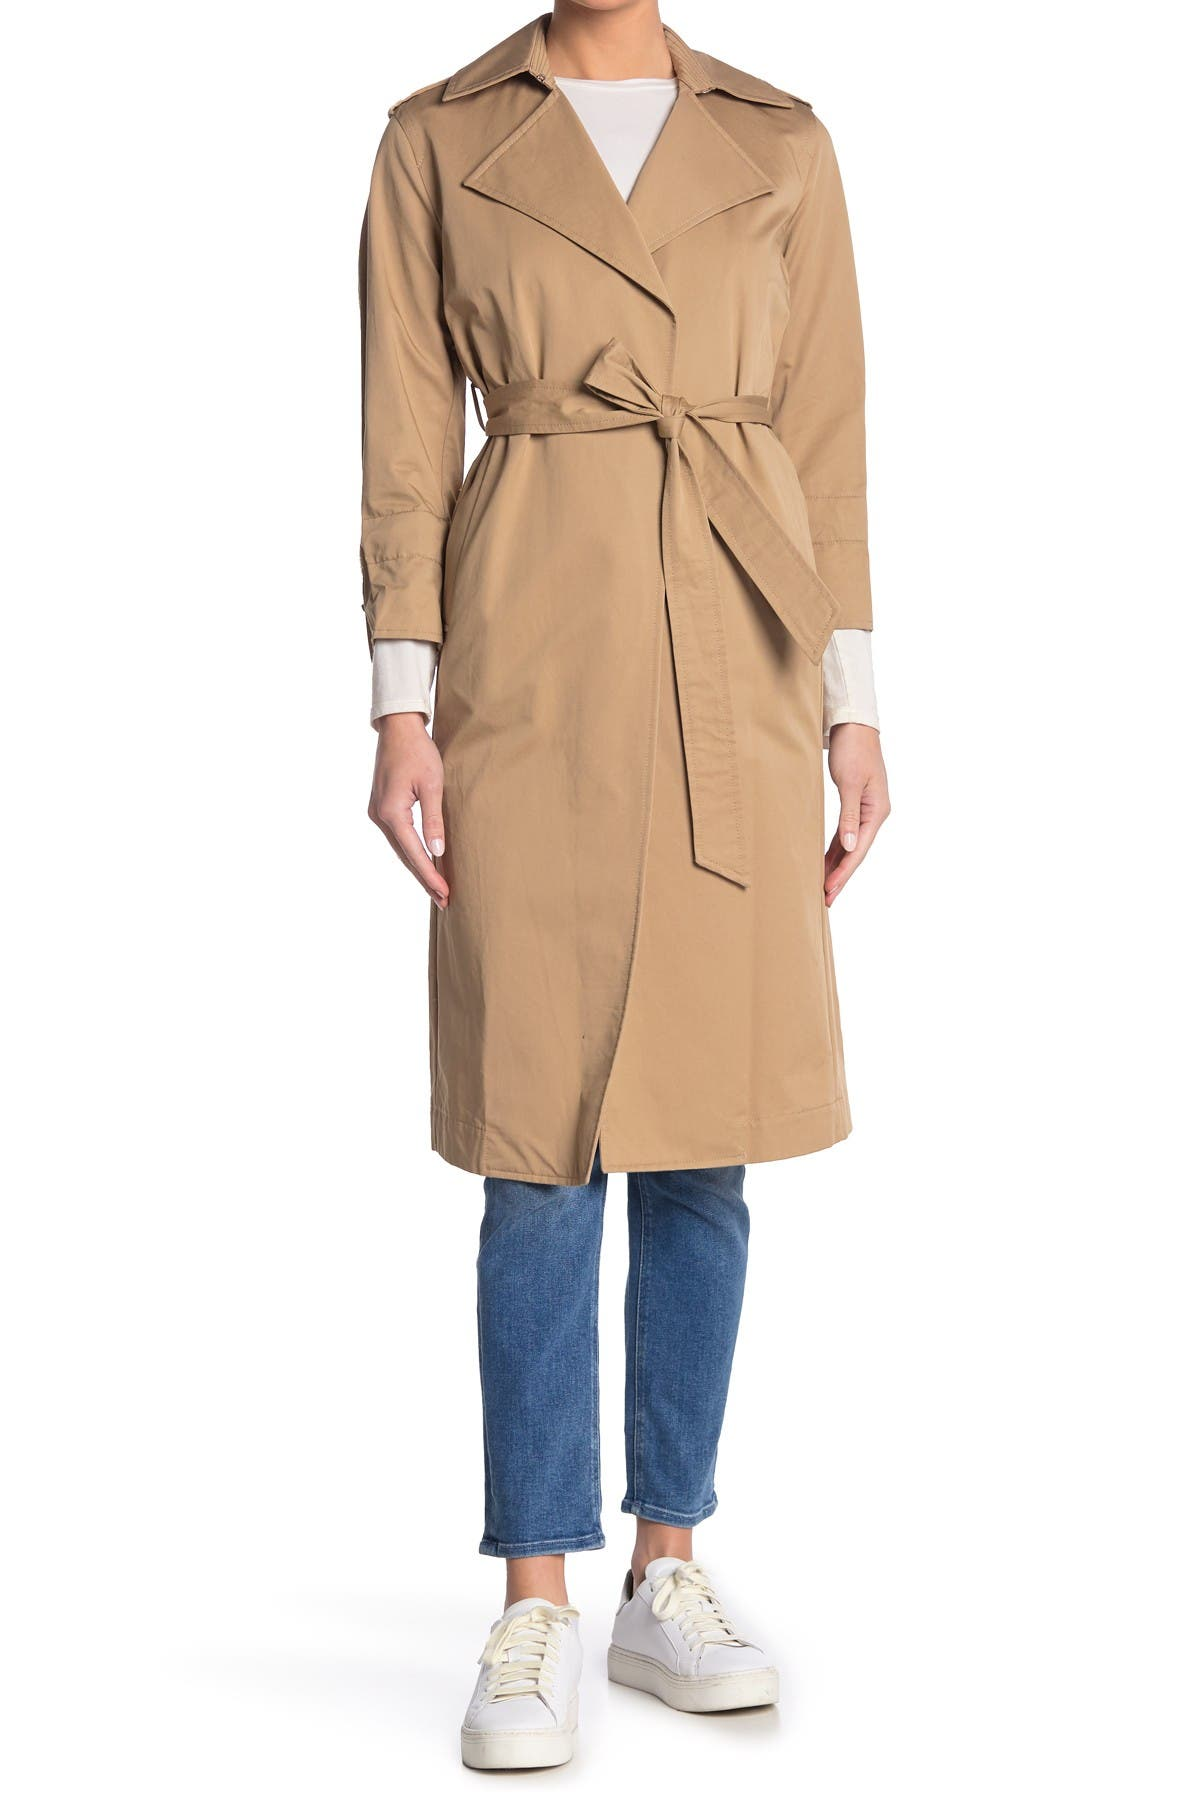 Image of ALLSAINTS Miley Mac 3/4 Sleeve Trench Coat